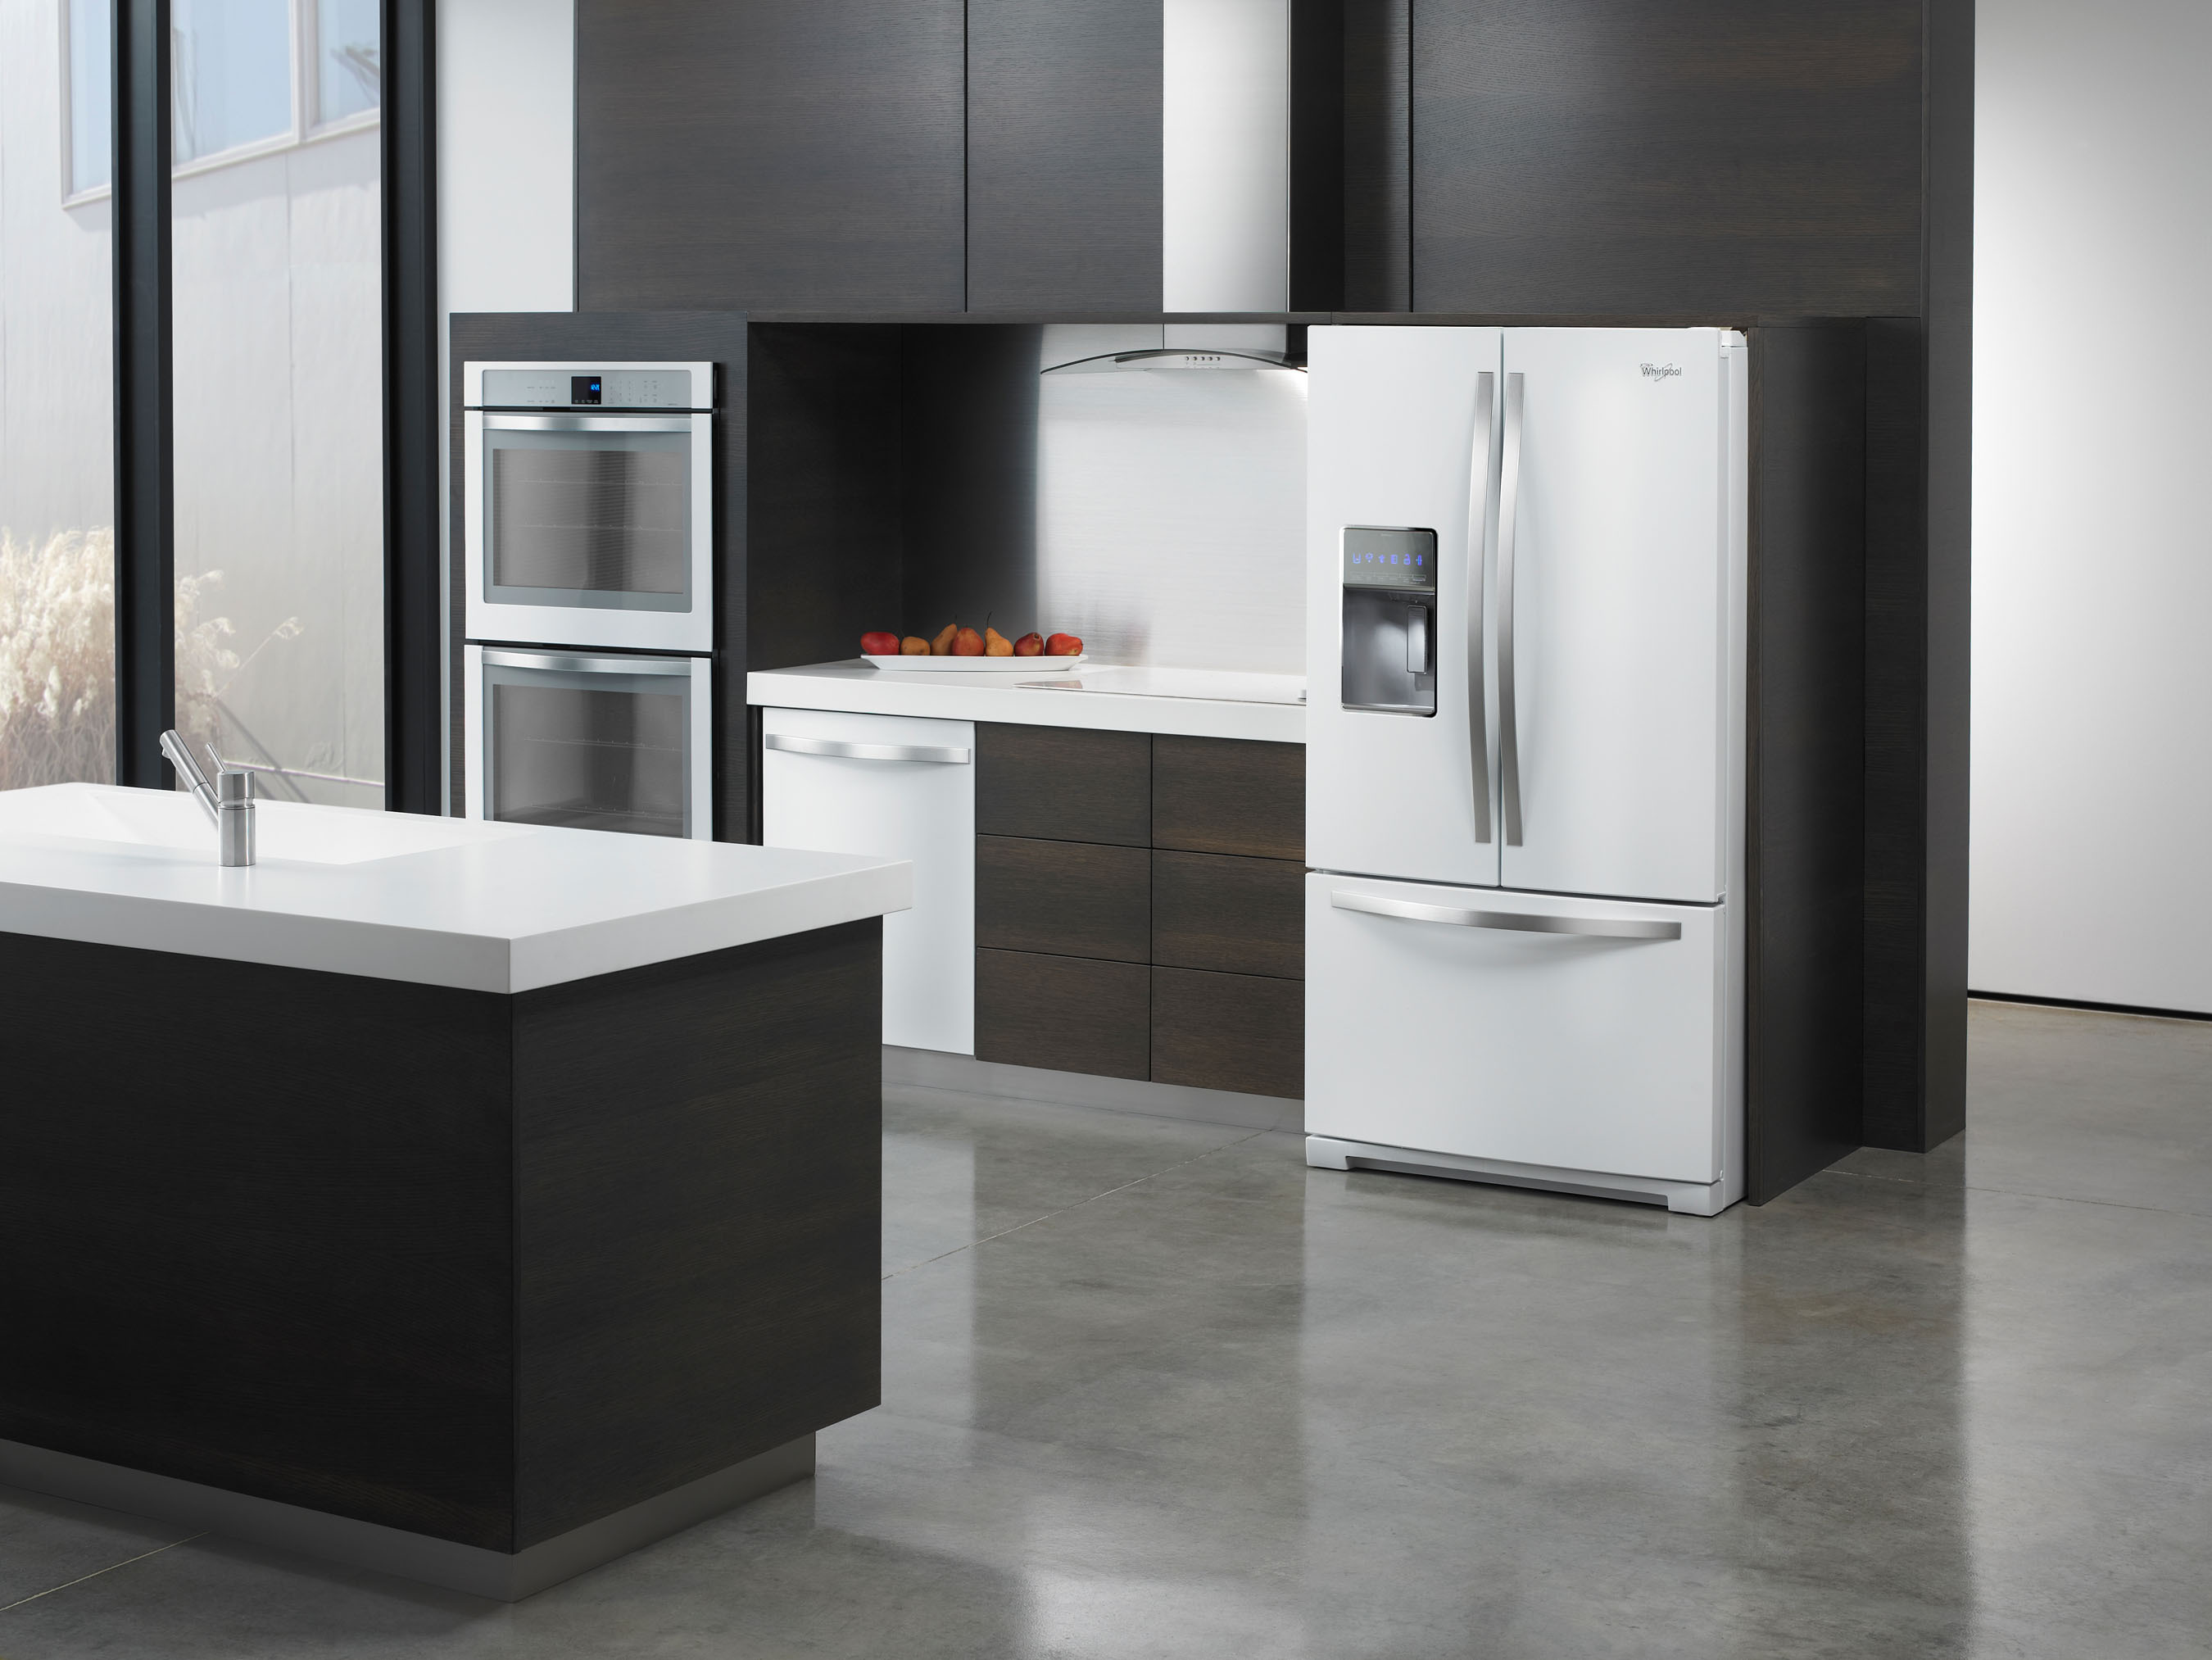 Whirlpool Introduces A New Finish For Premium Kitchens